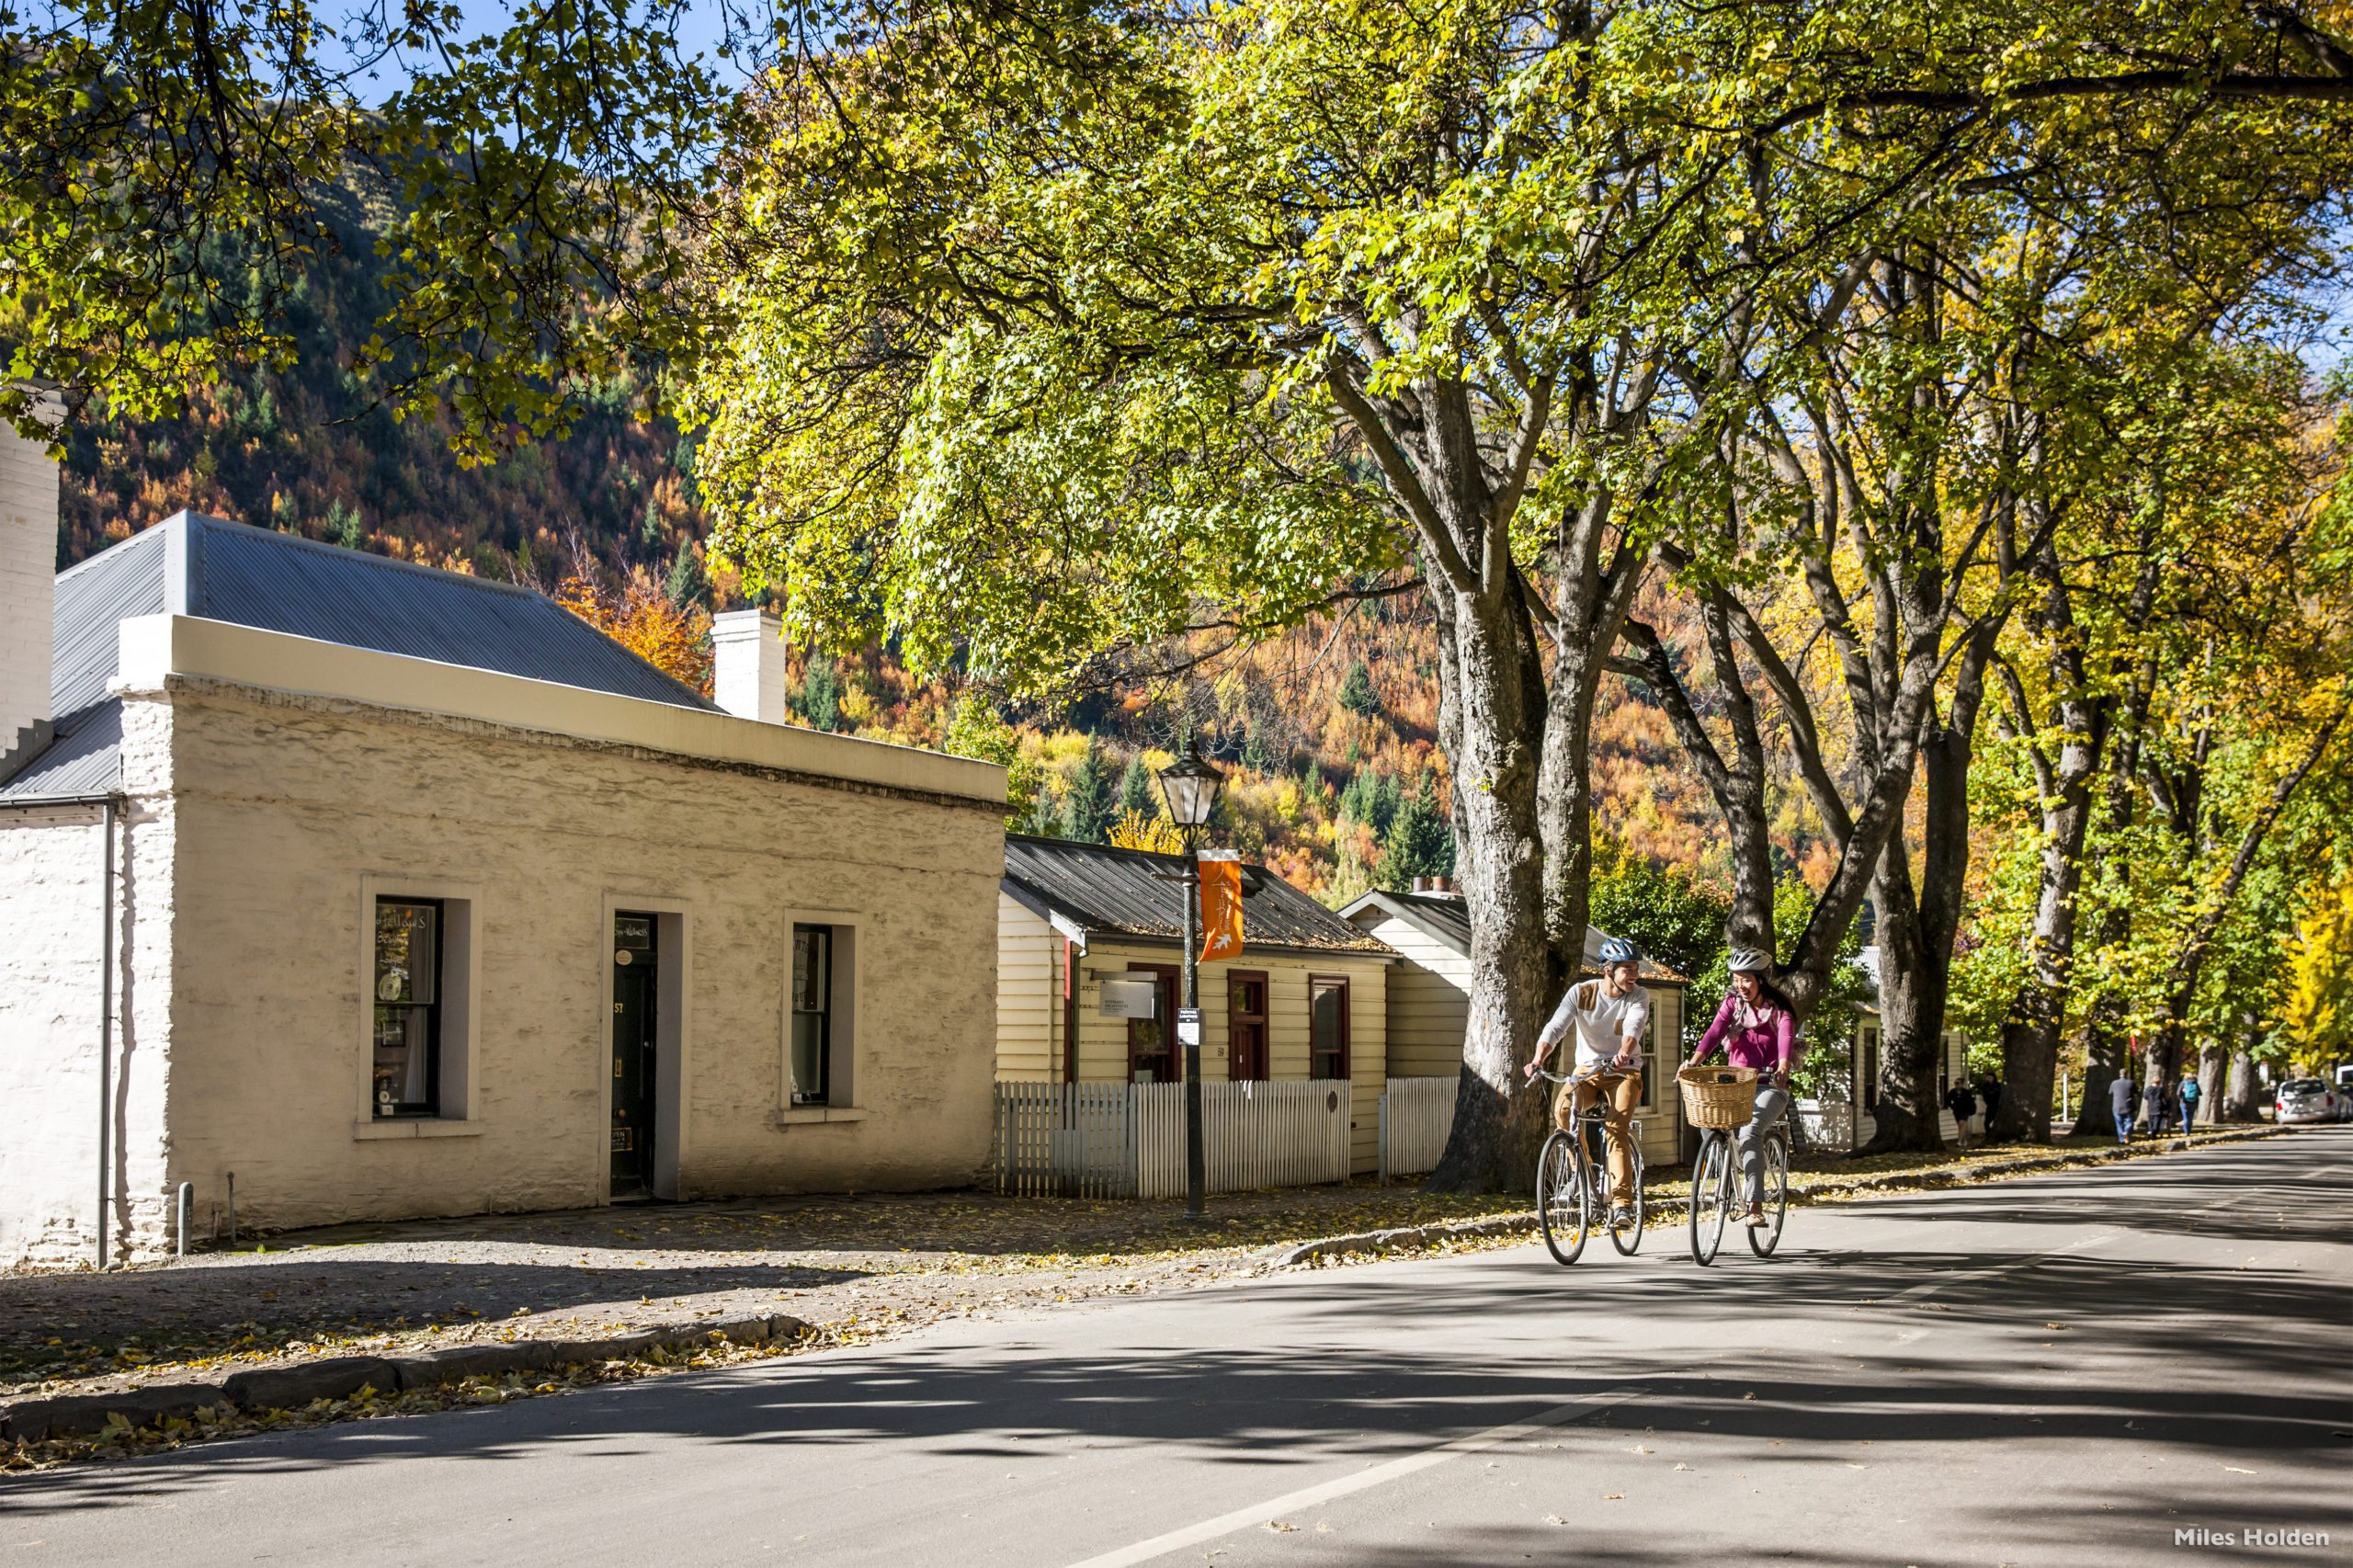 People biking through historic Arrowtown past a charming old building on a tree-lined street.